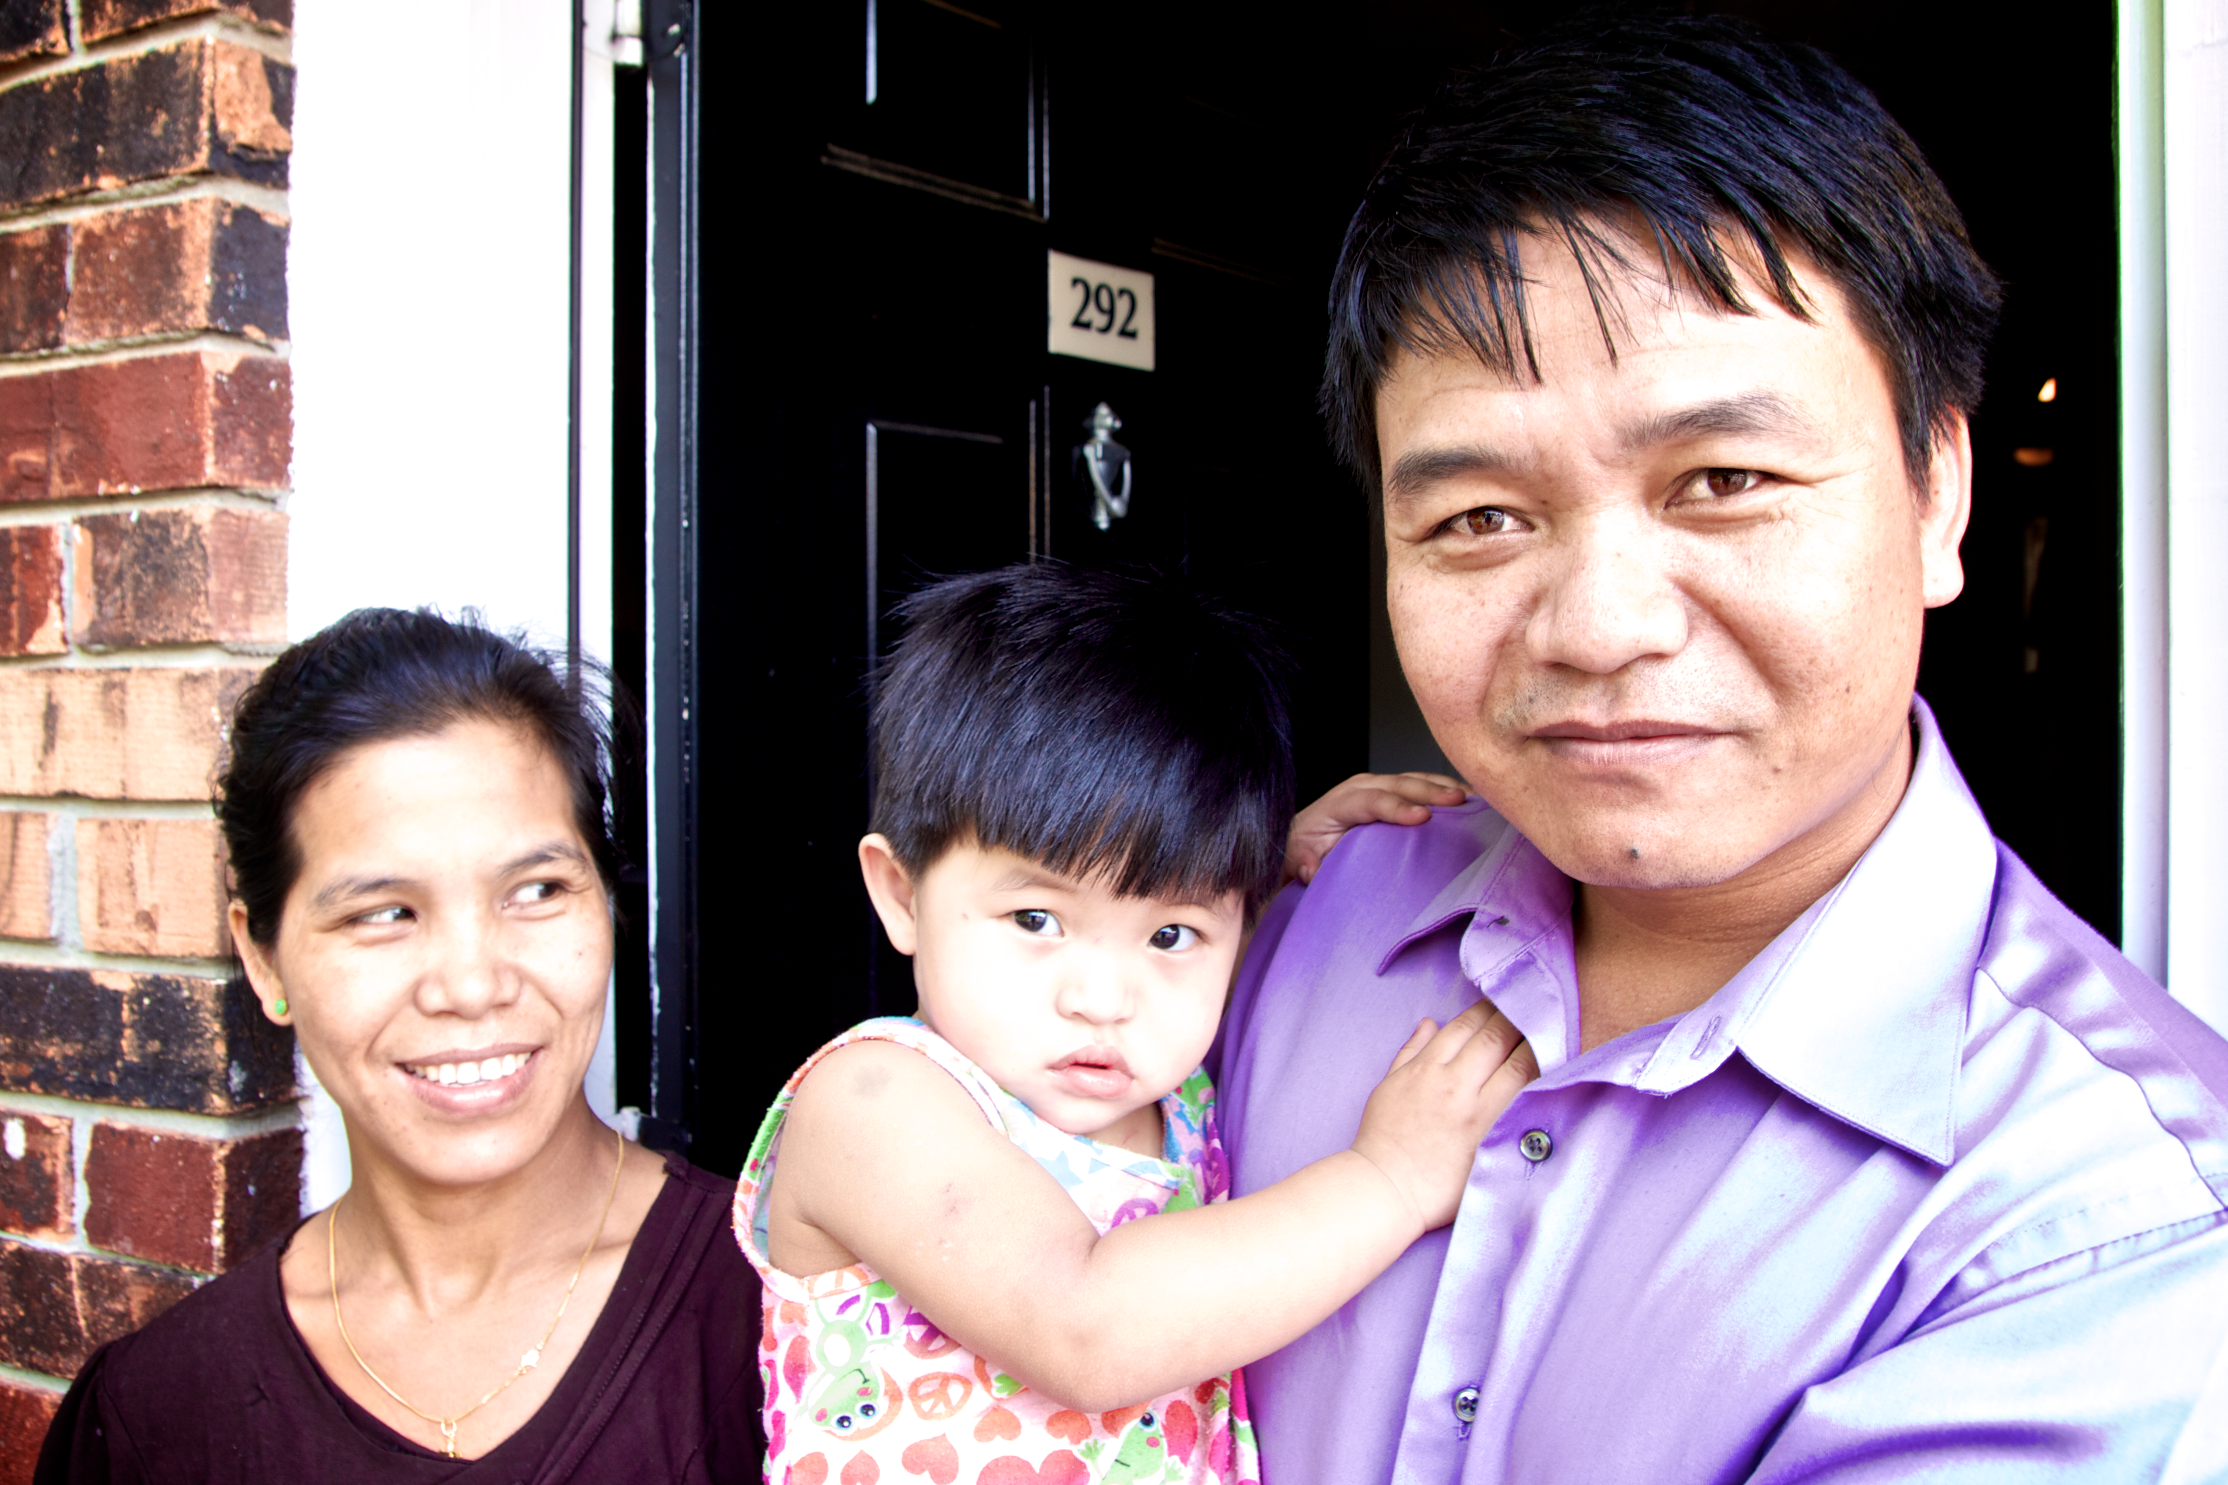 This is an empowered Burmese pastor and his family, courageously and faithfullyserving refugees in Atlanta. No Daddy Warbucks necessary.